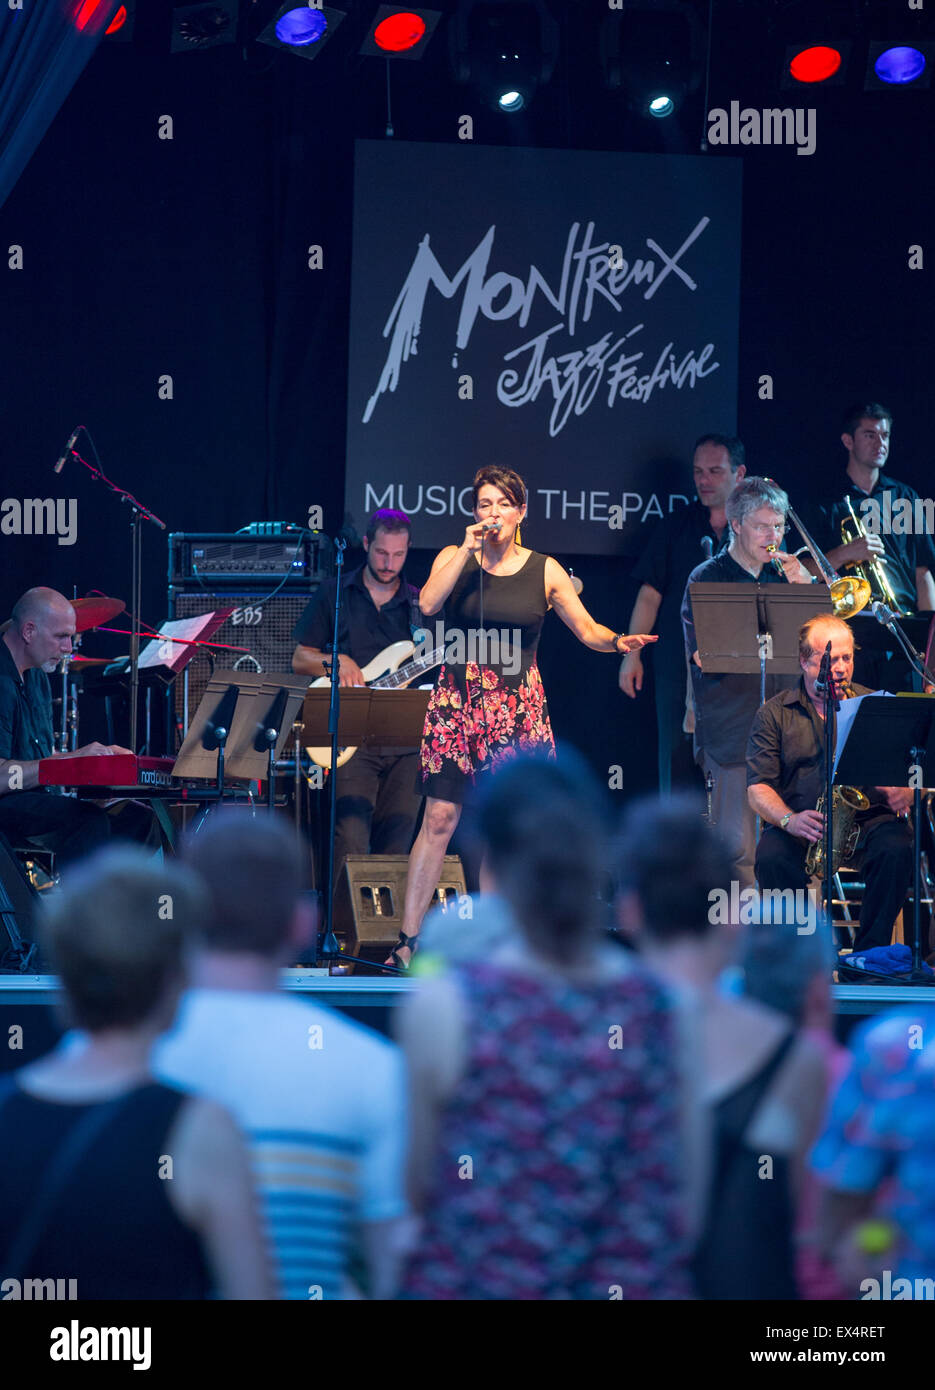 Montreux Jazz Festival 2015 >> Montreux Switzerland 6th July 2015 Members Of A Local